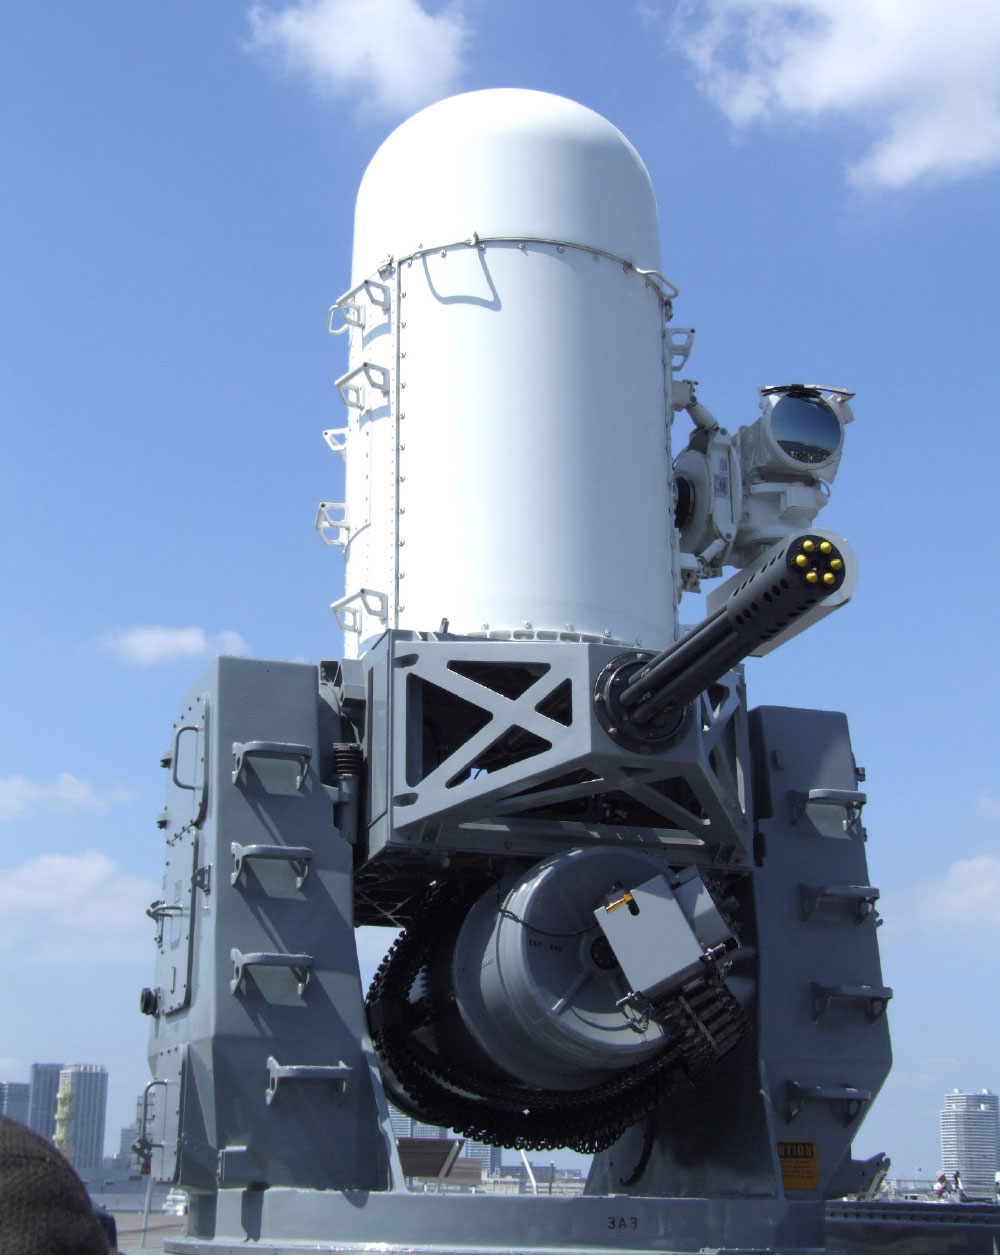 Delivery of Modernized Phalanx Mk-15 Block 1B (Baseline 2) Close-In Weapon Systems (CIWS) Completed!